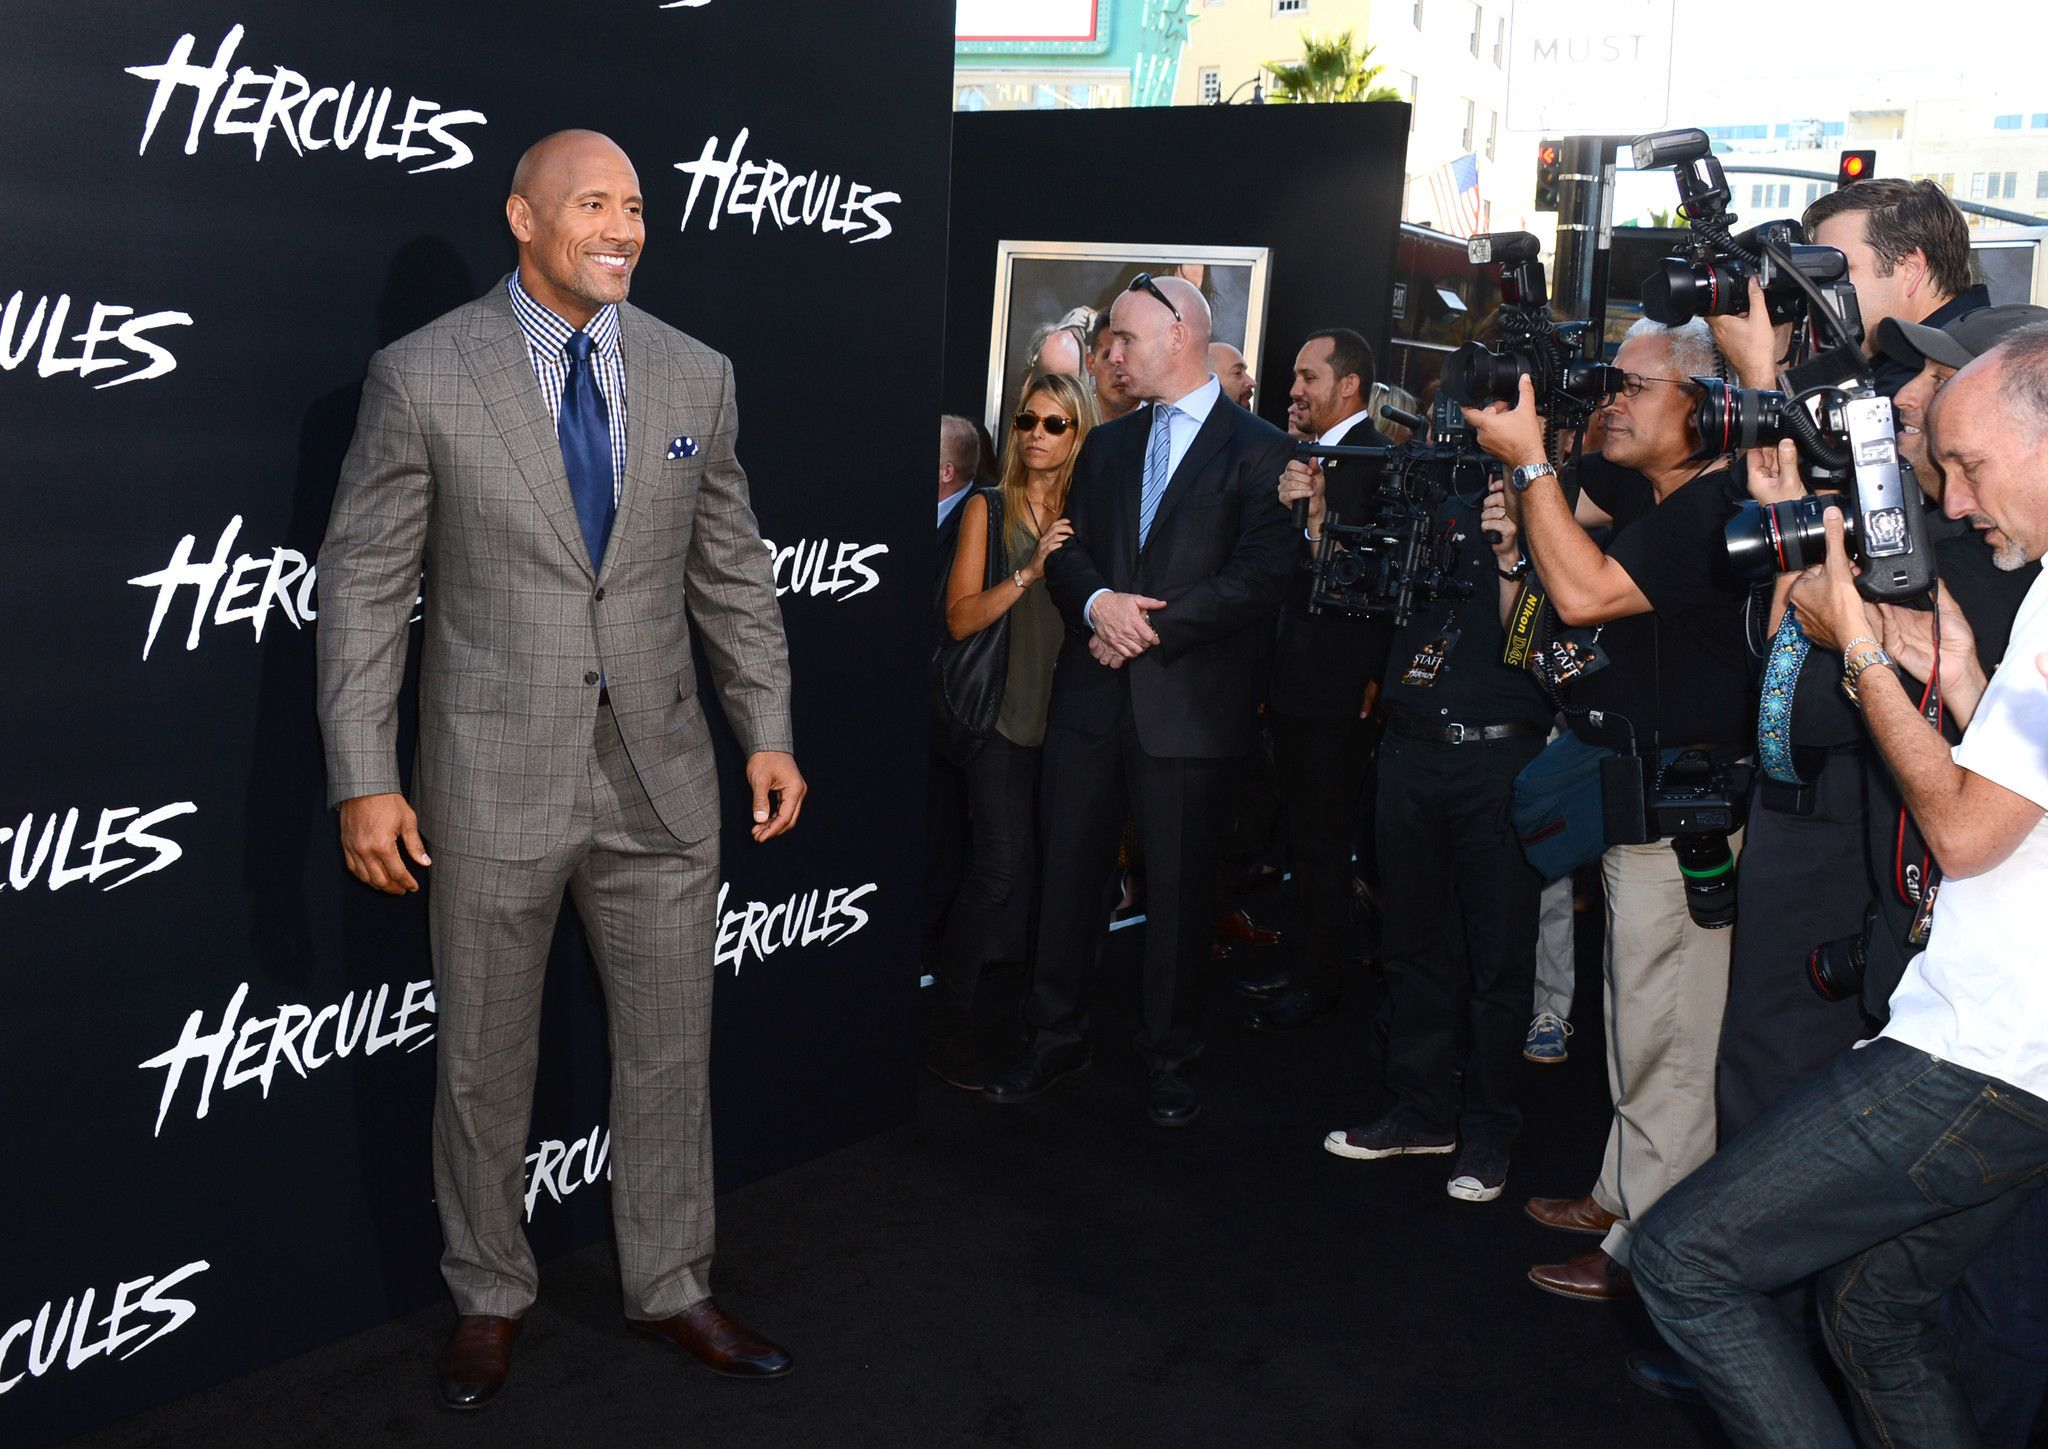 The rock transforms into hollywoods hercules